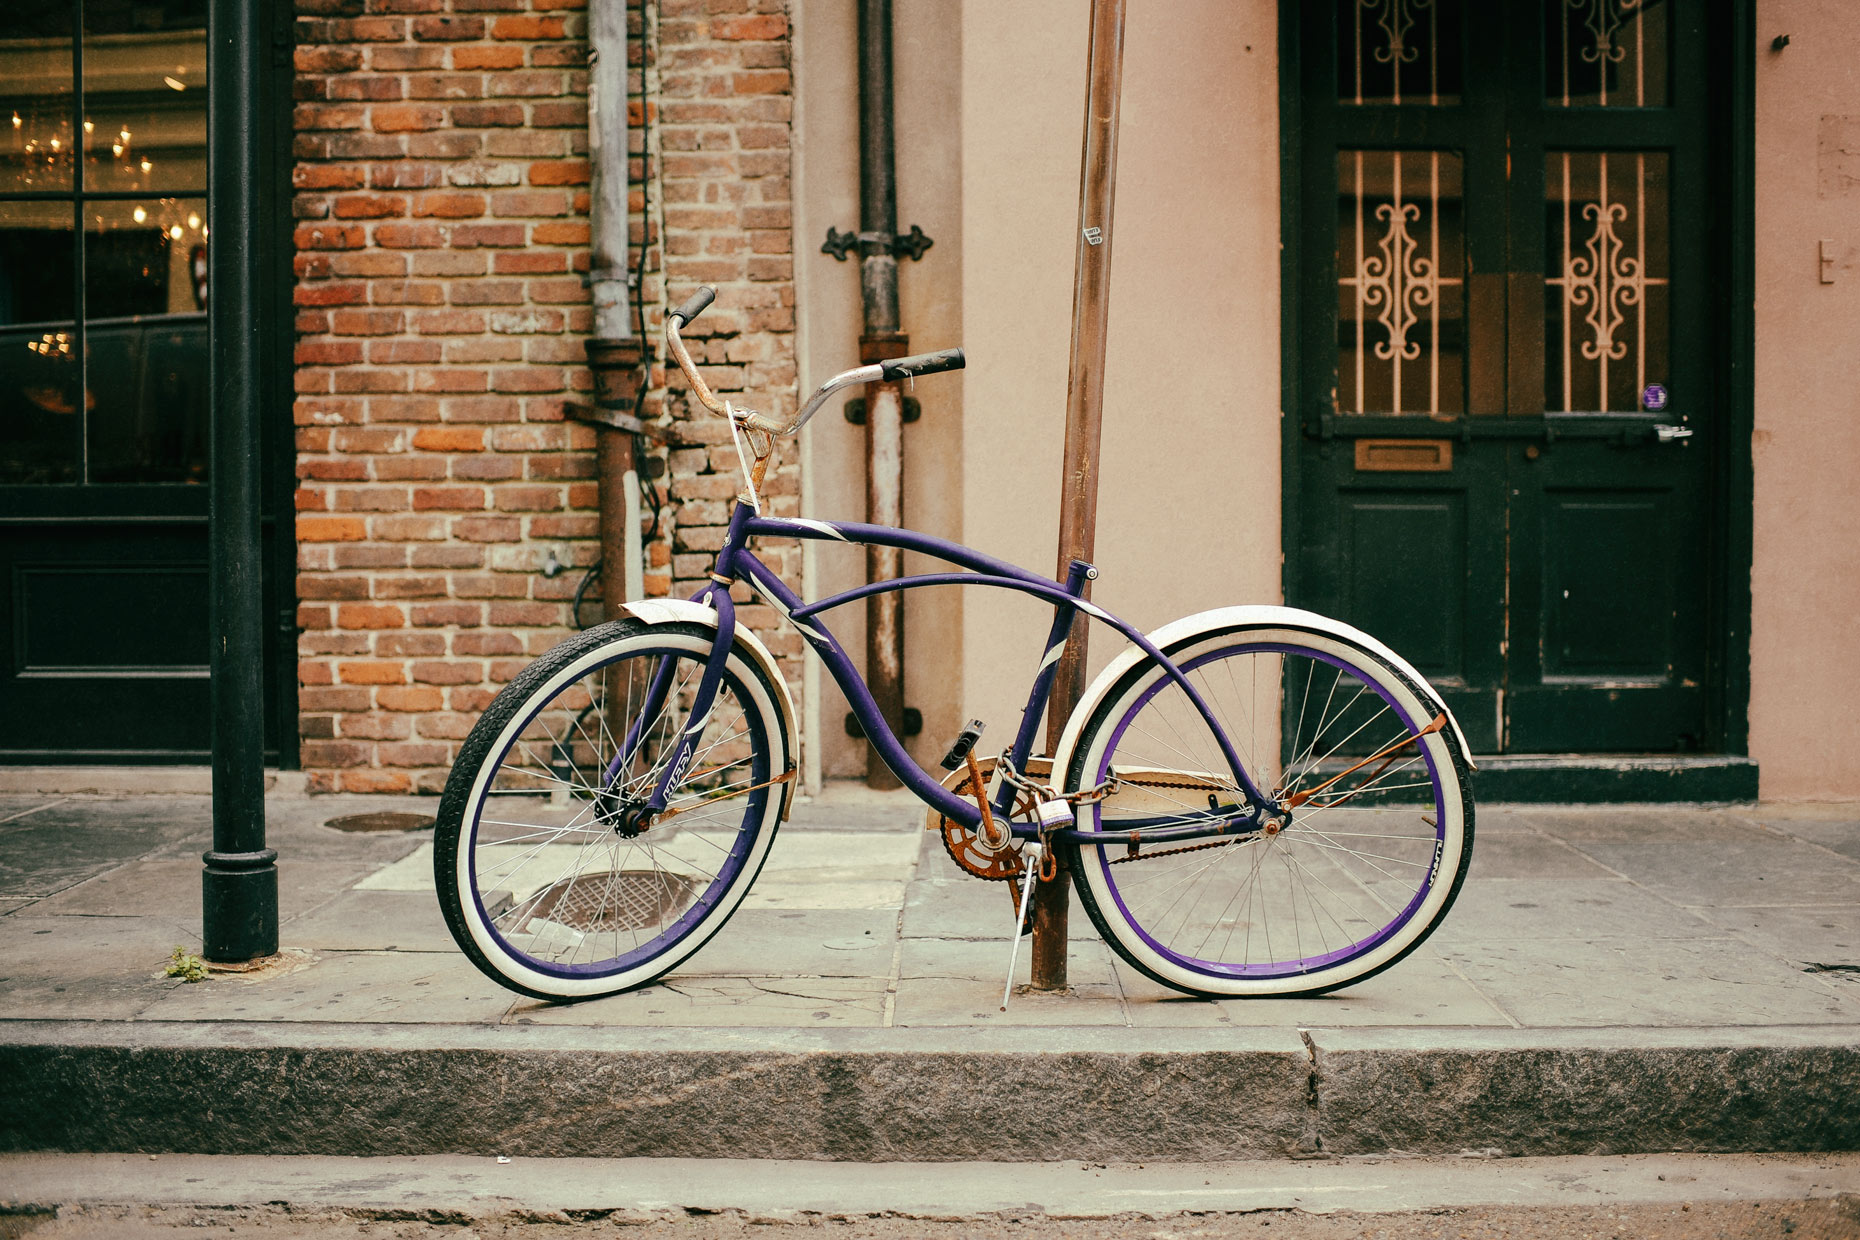 Bicycle in New Orleans by photographer Kevin Brown